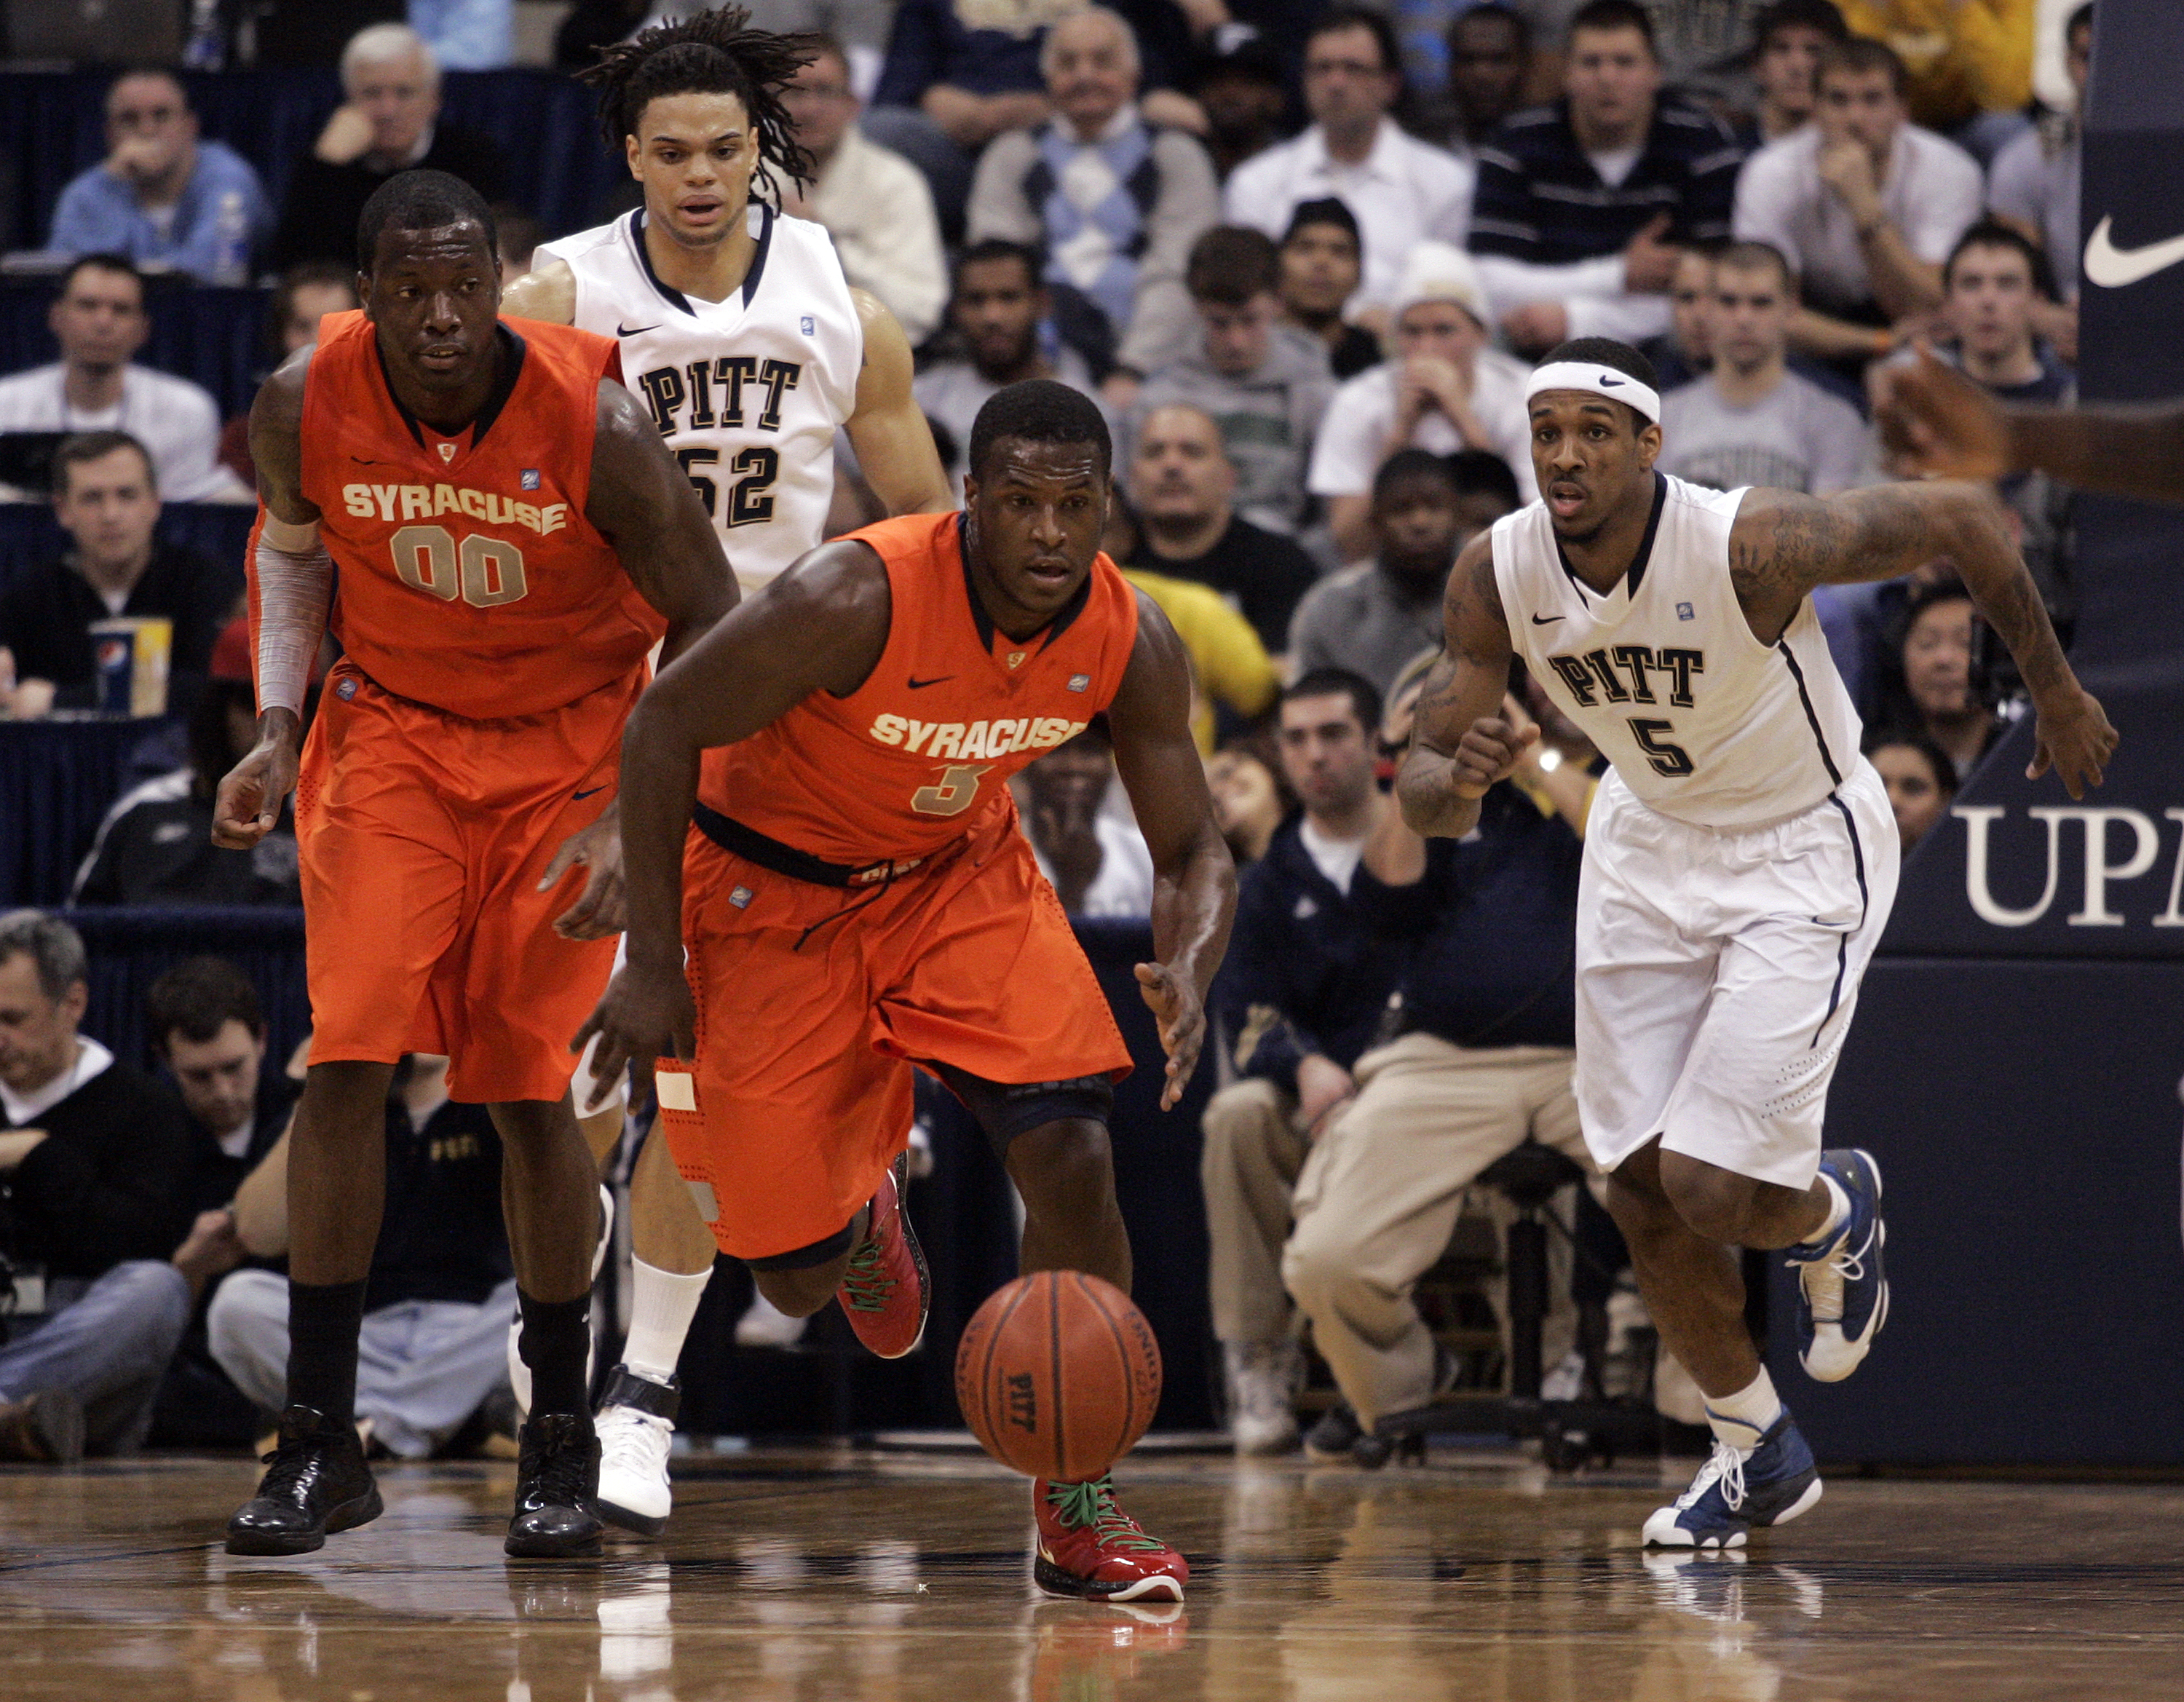 PITTSBURGH, PA - JANUARY 17:  Dion Waiters #3 of the Syracuse Orange pursues a loose ball against the Pittsburgh Panthers at Petersen Events Center on January 17, 2011 in Pittsburgh, Pennsylvania.  (Photo by Justin K. Aller/Getty Images)